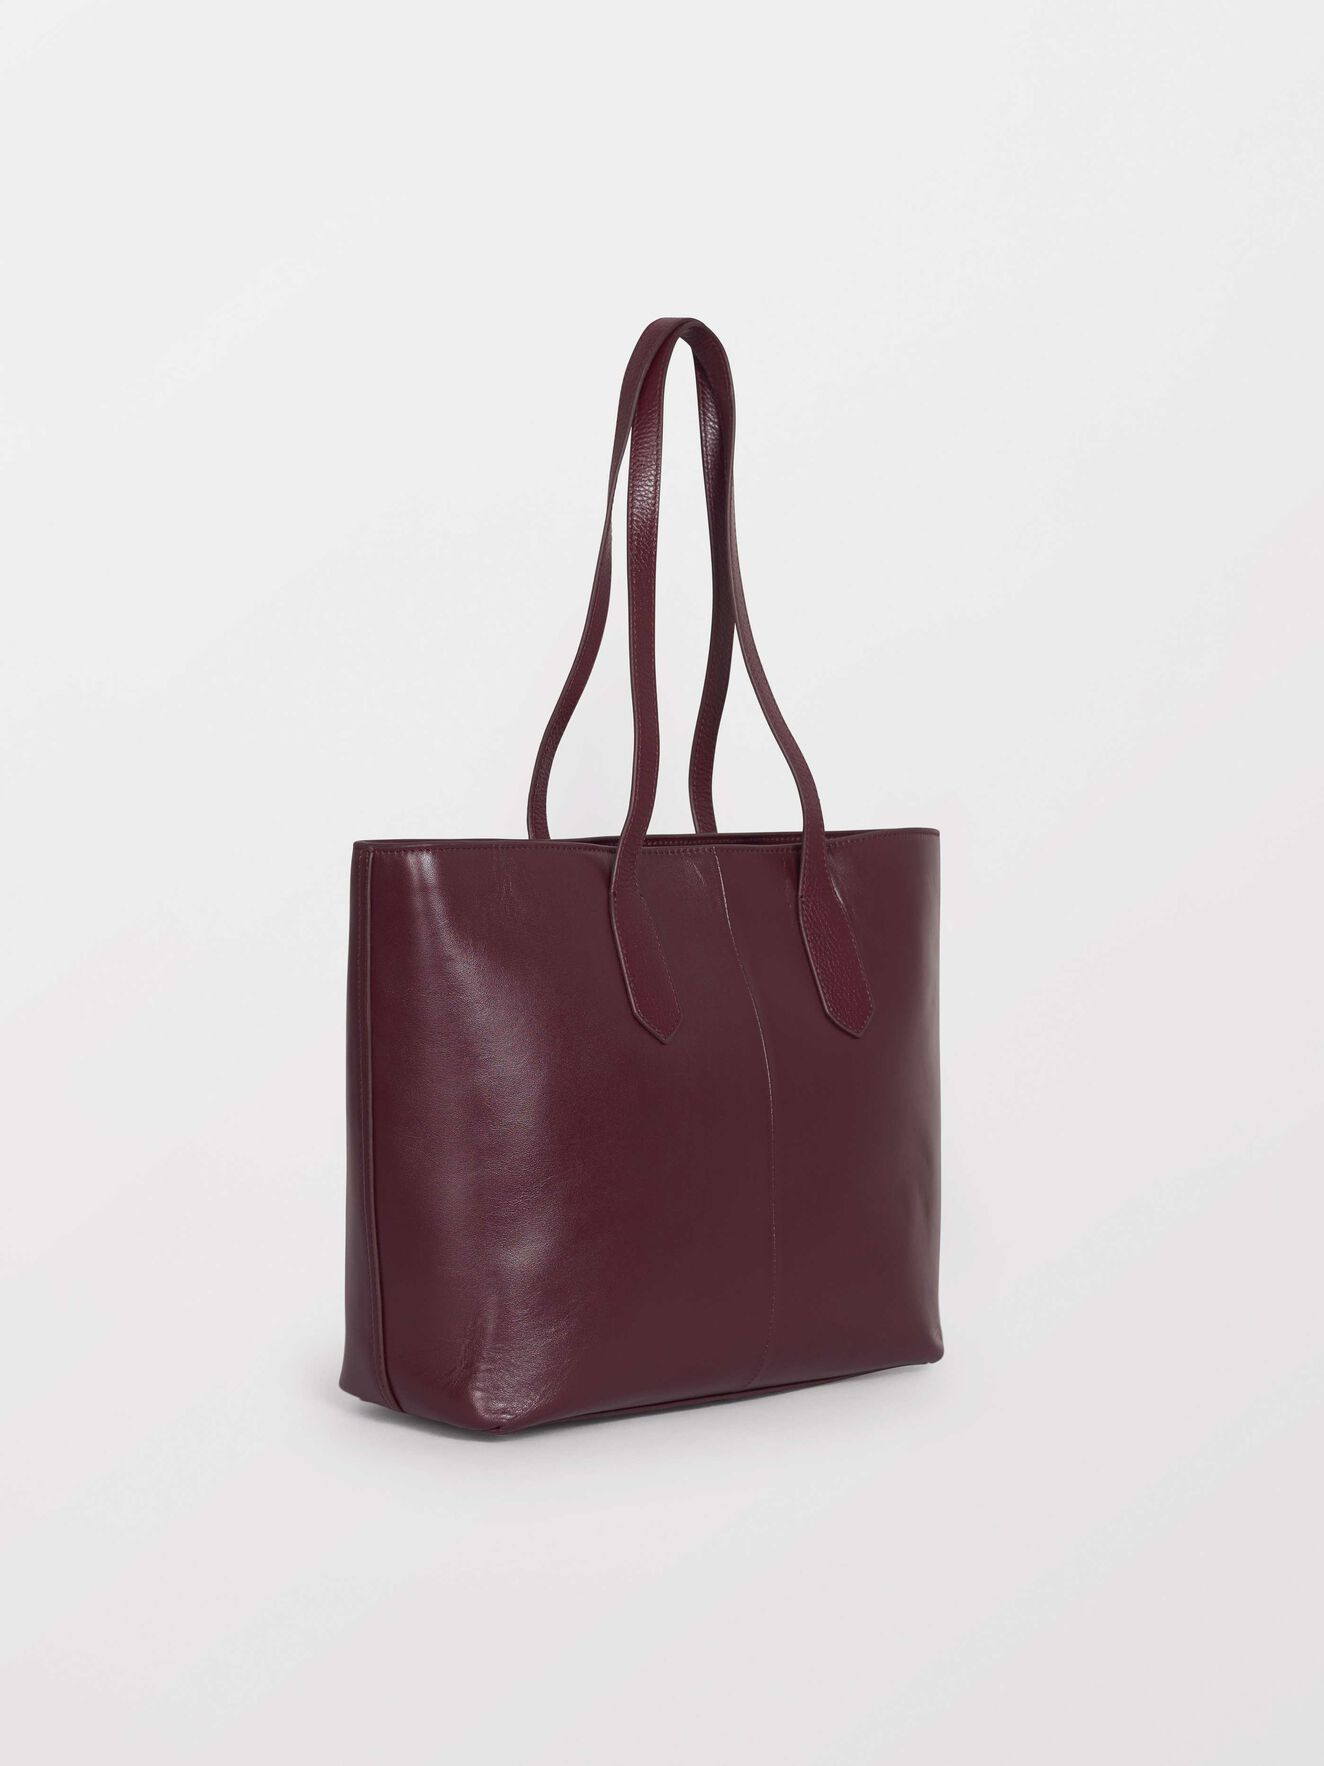 Ornitia Bag in Noon Plum from Tiger of Sweden